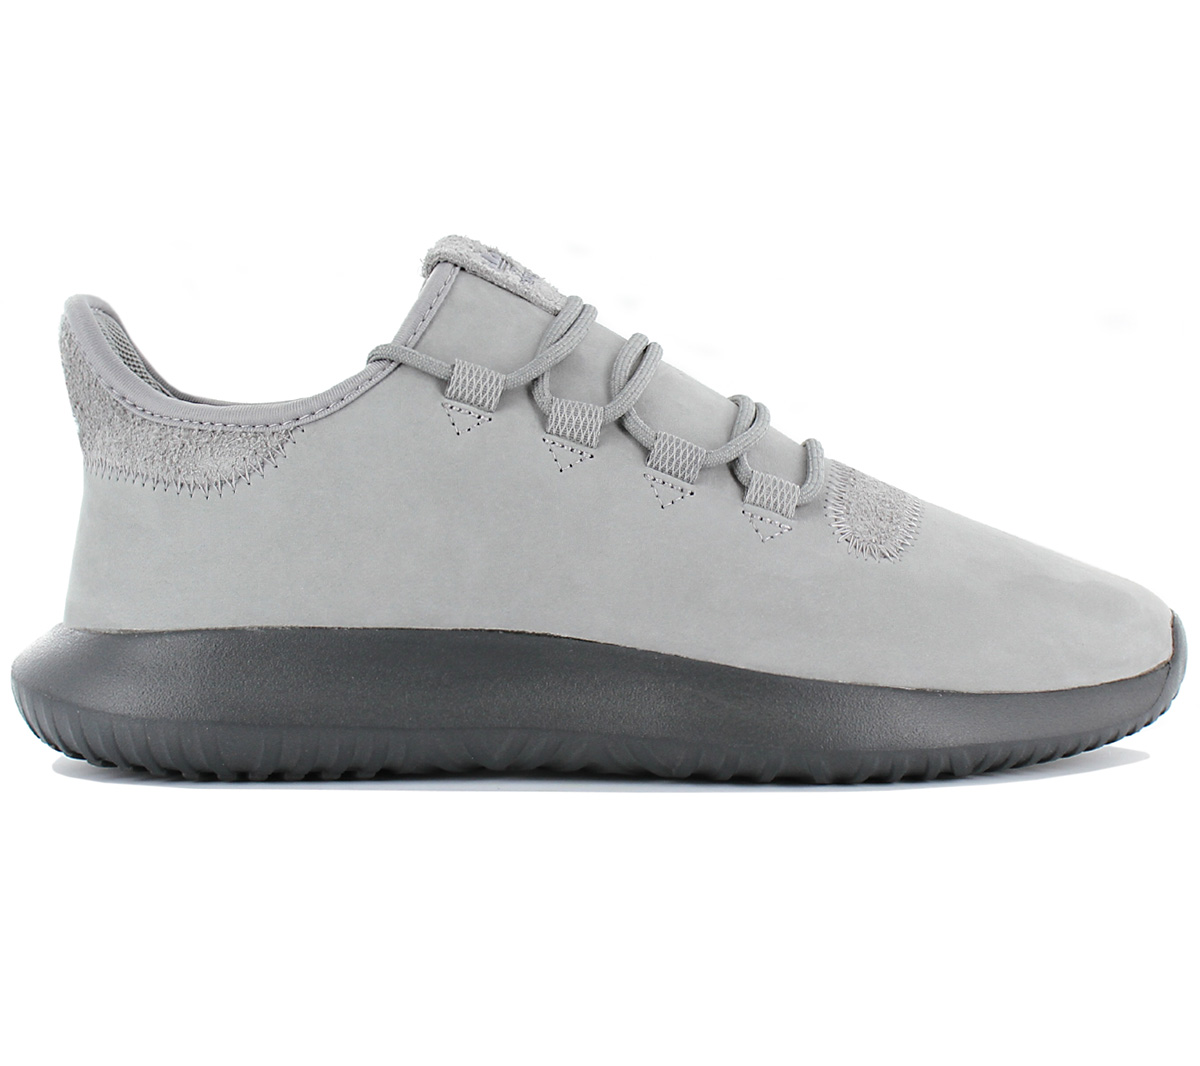 Details about Adidas Originals Tubular Shadow Leather Men's Sneaker Shoes Leather Grey BB6116